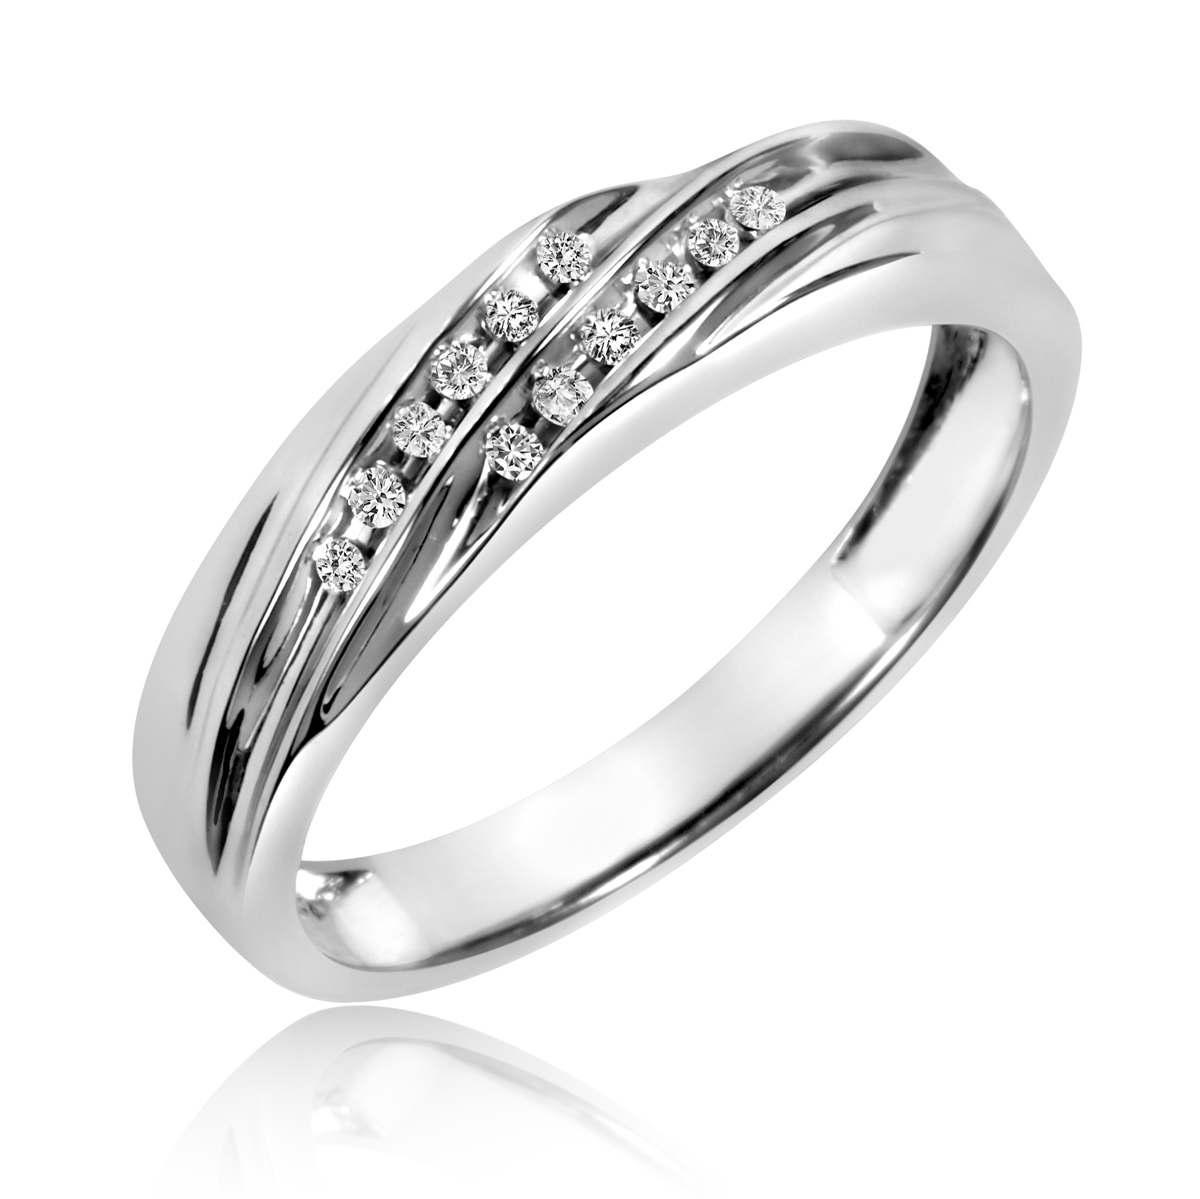 1 7 carat t w his and hers wedding band set 14k